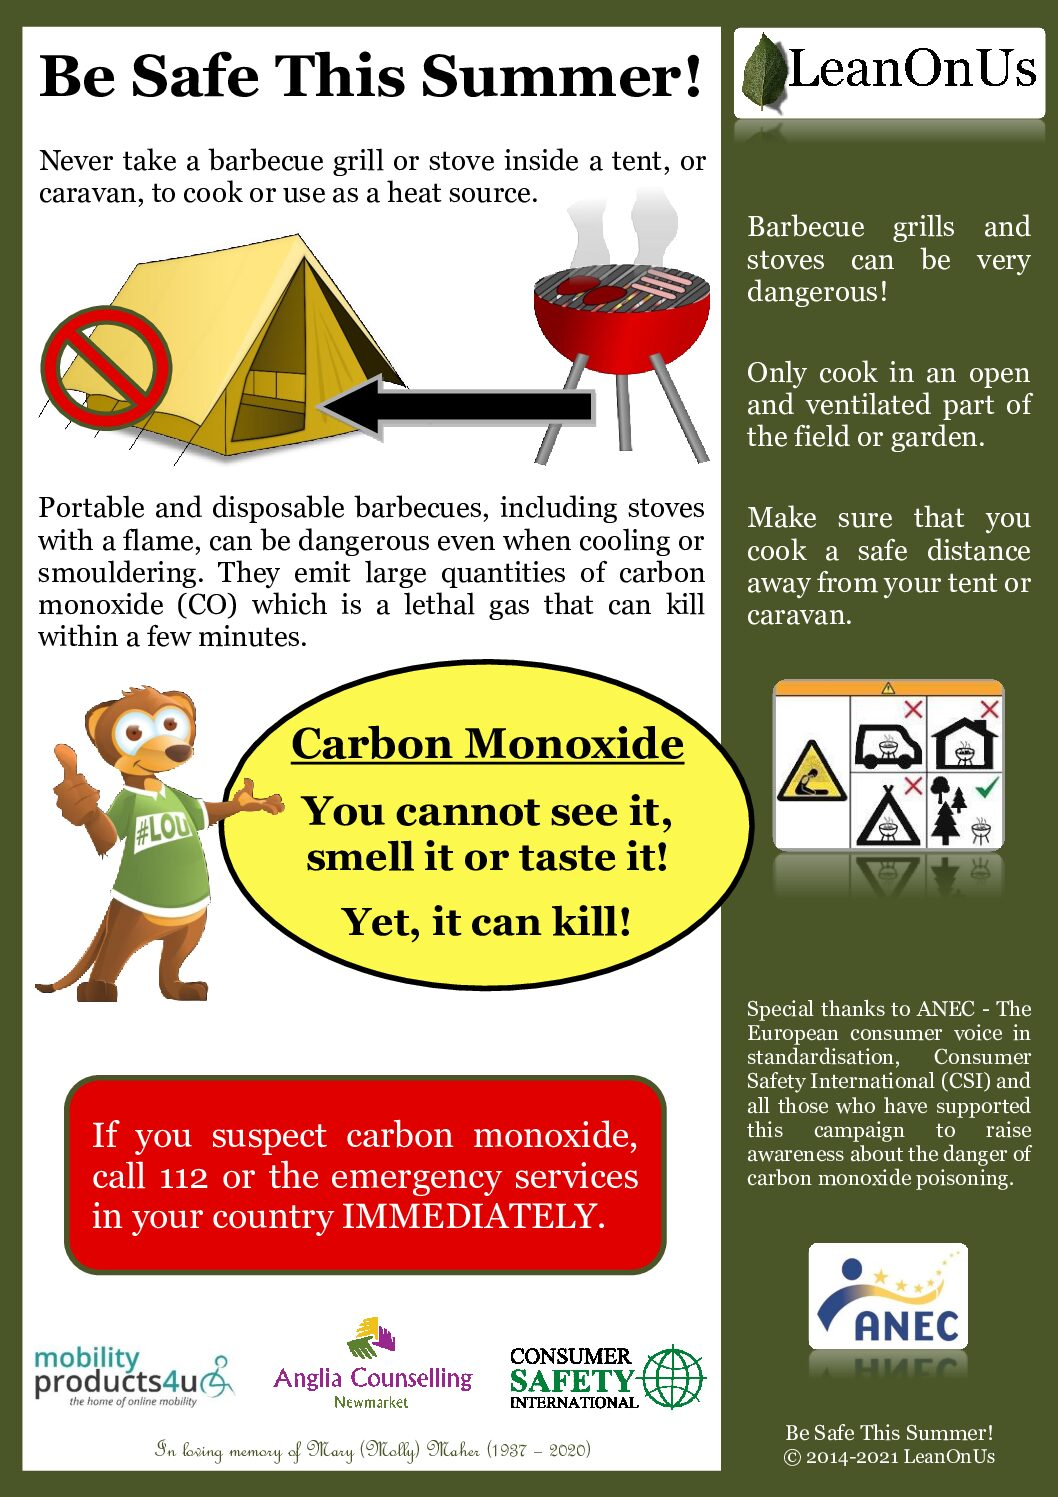 Don't Let Your BBQ Put Your Health at Risk